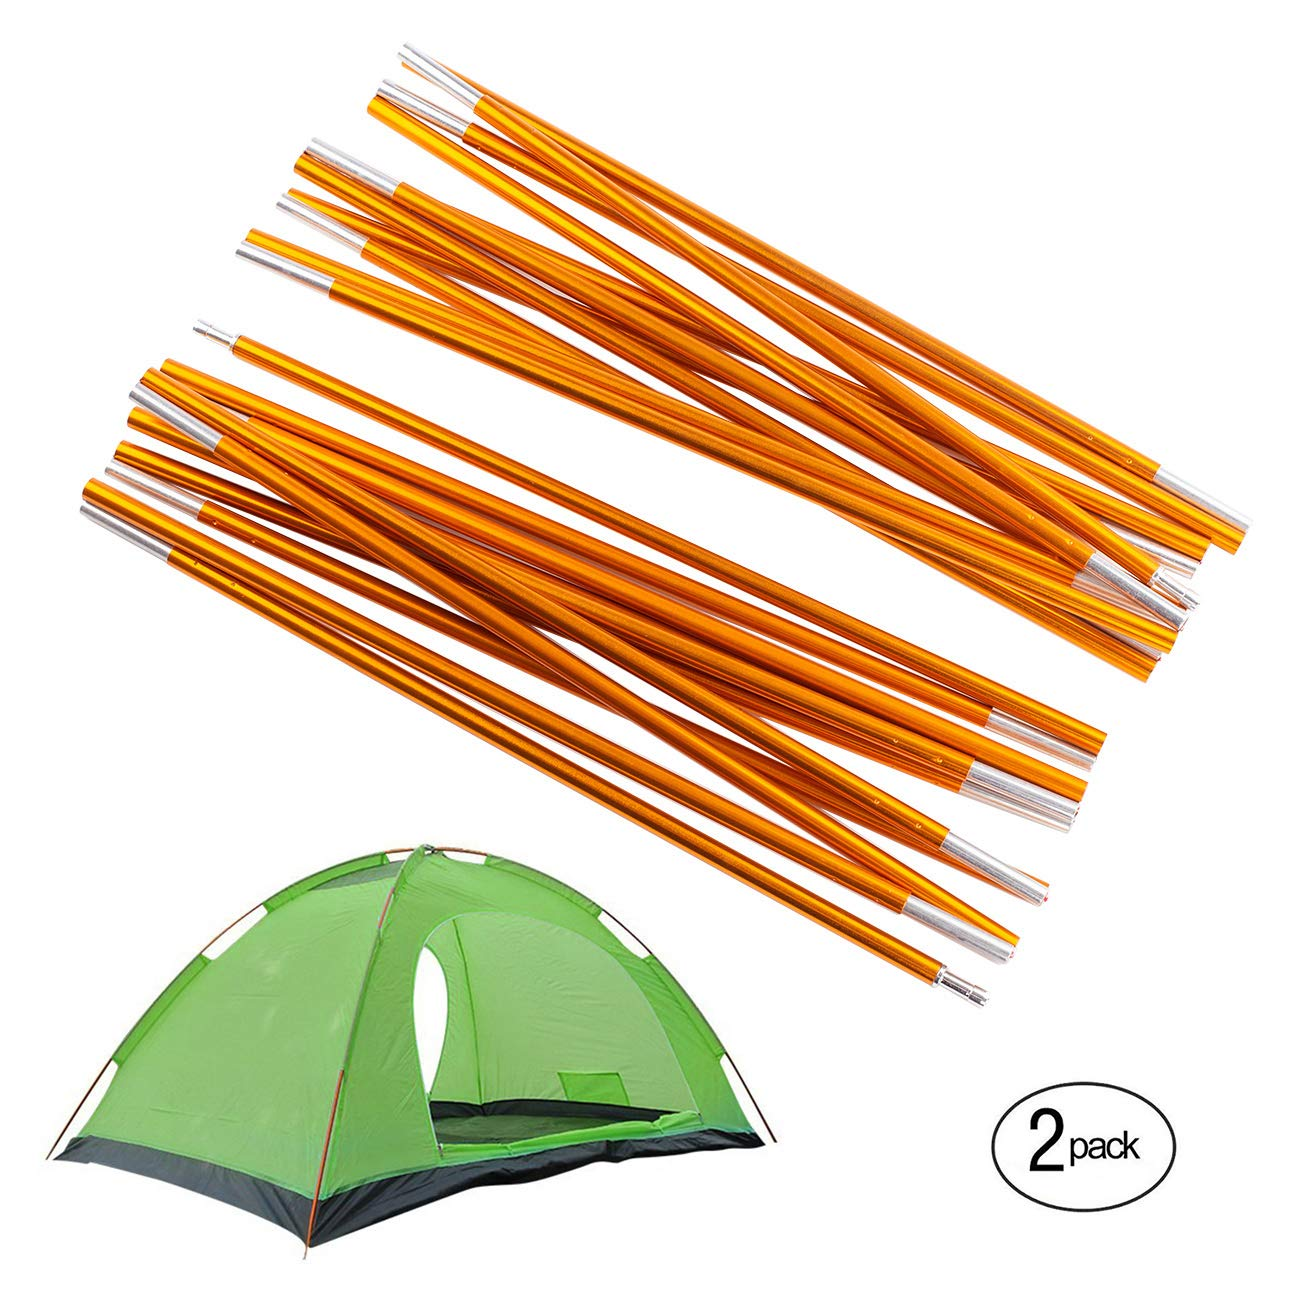 Overmont Adjustable Tarp and Tent Poles 360cm/142in Aluminum Alloy Outdoor C&ing Tent Tarp Rod  sc 1 st  Amazon UK & Tent Pole Replacements: Amazon.co.uk